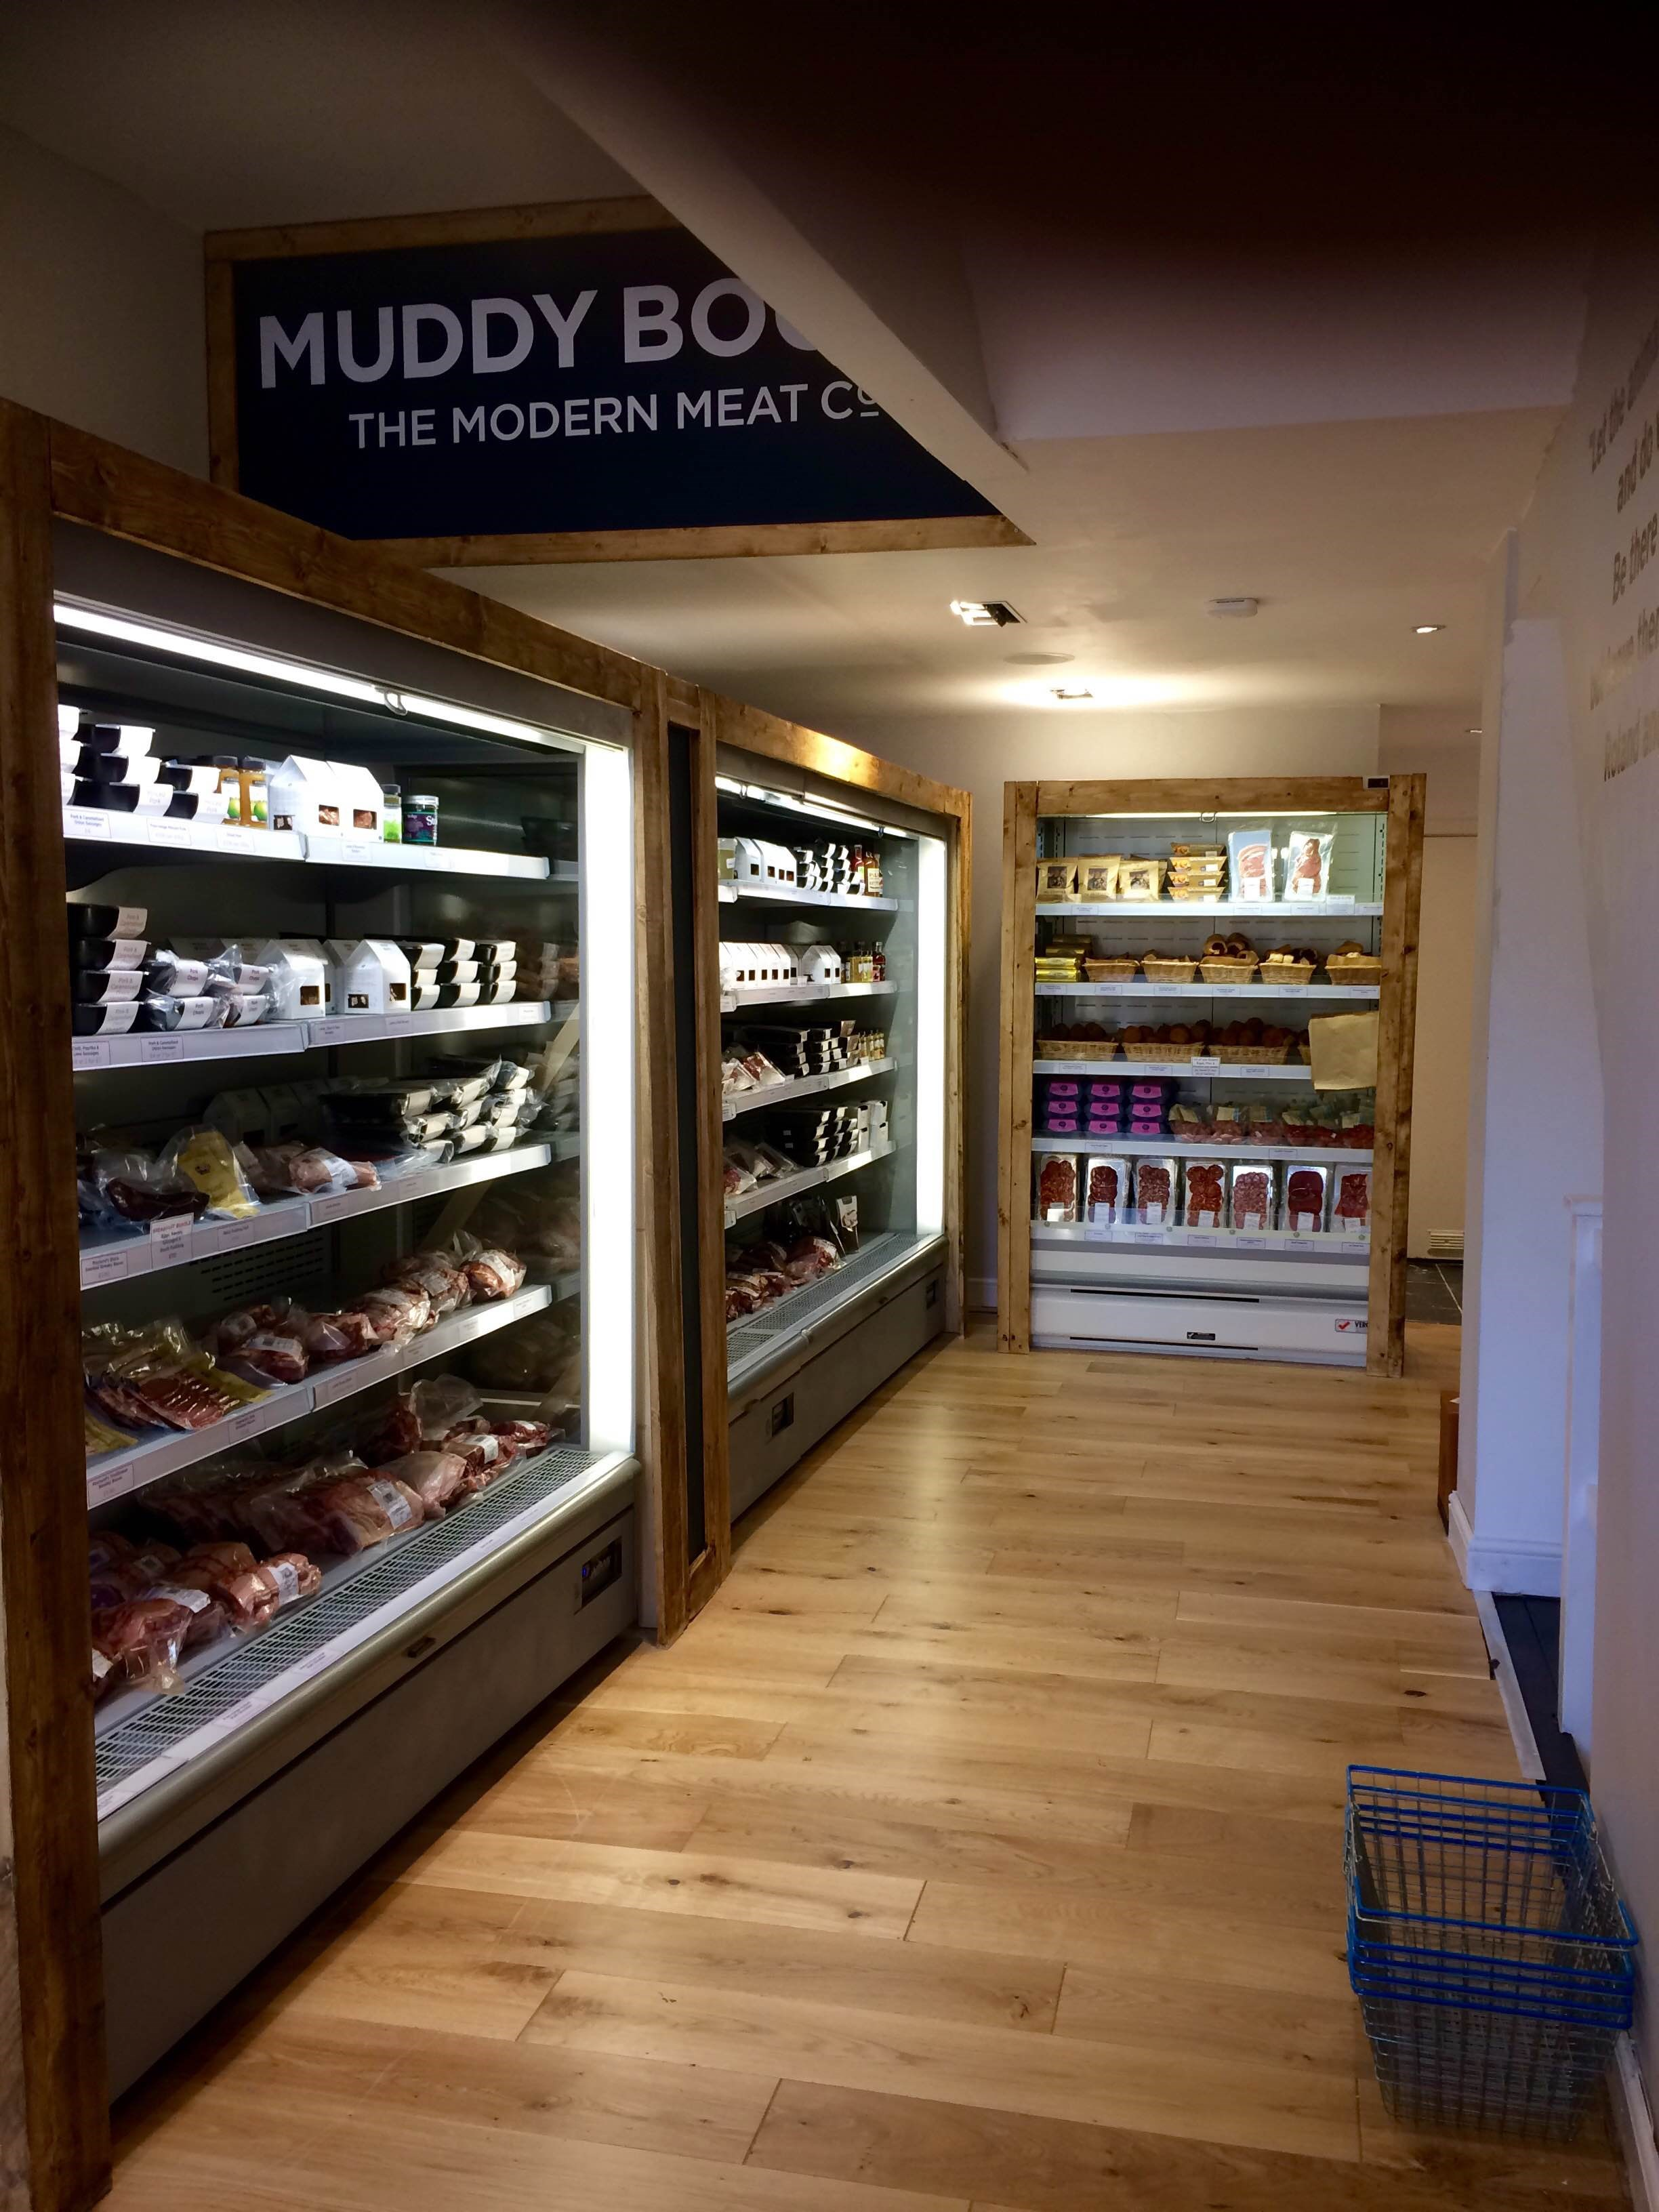 Inside one of the Muddy Boots stores